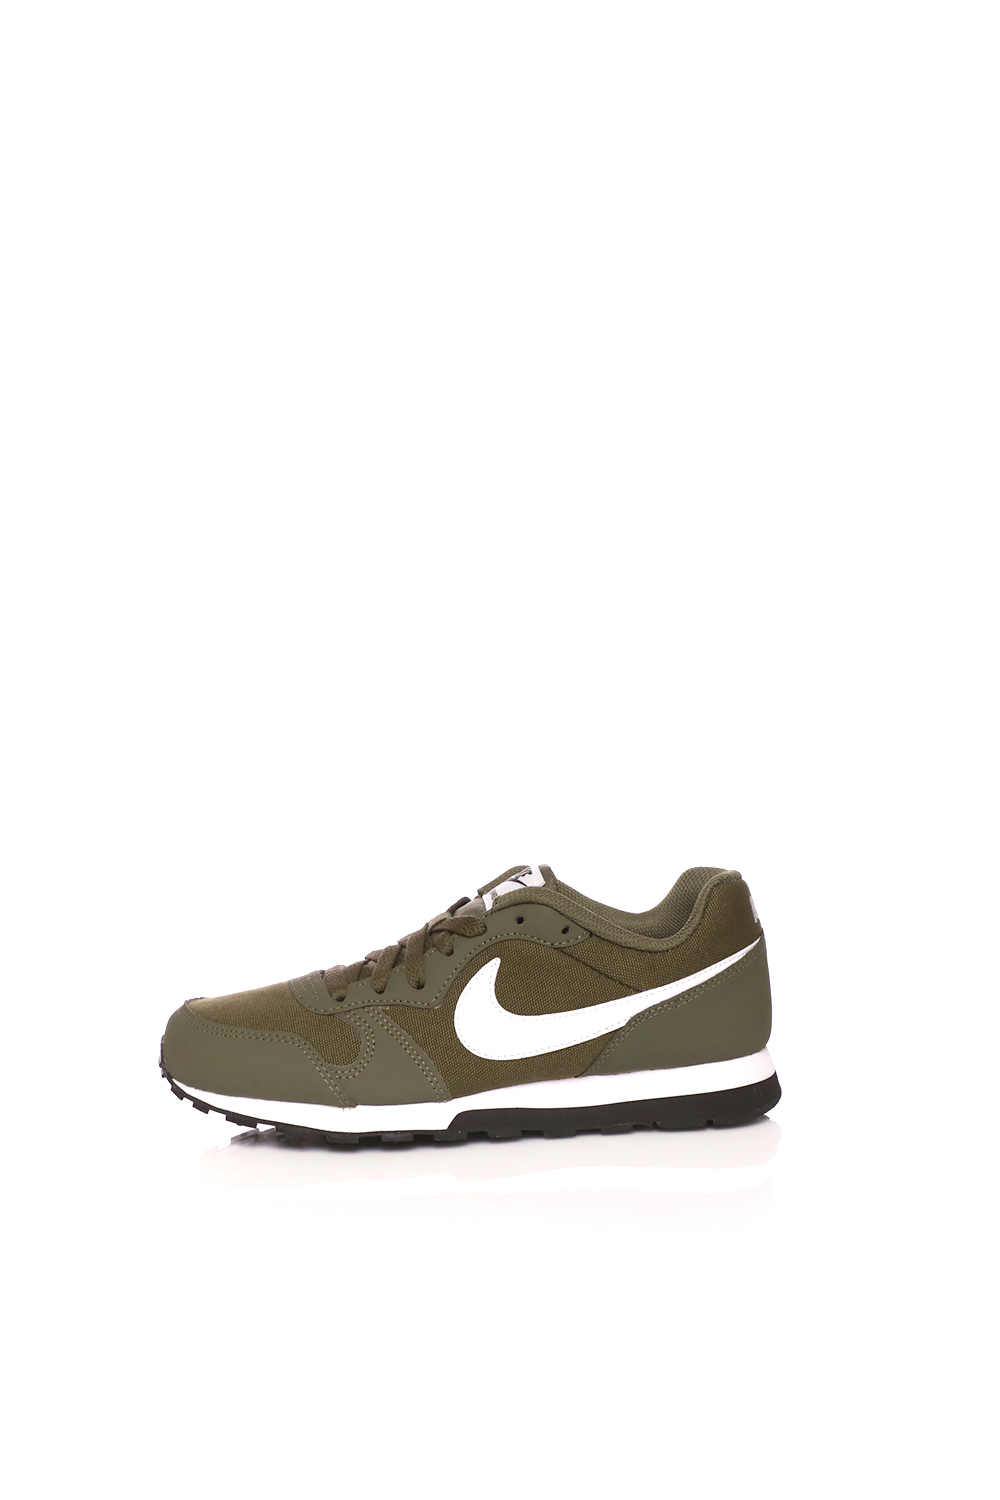 6bf1a24759e -41% Factory Outlet NIKE – Αγορίστικα παπούτσια NIKE MD RUNNER 2 (GS) χακί